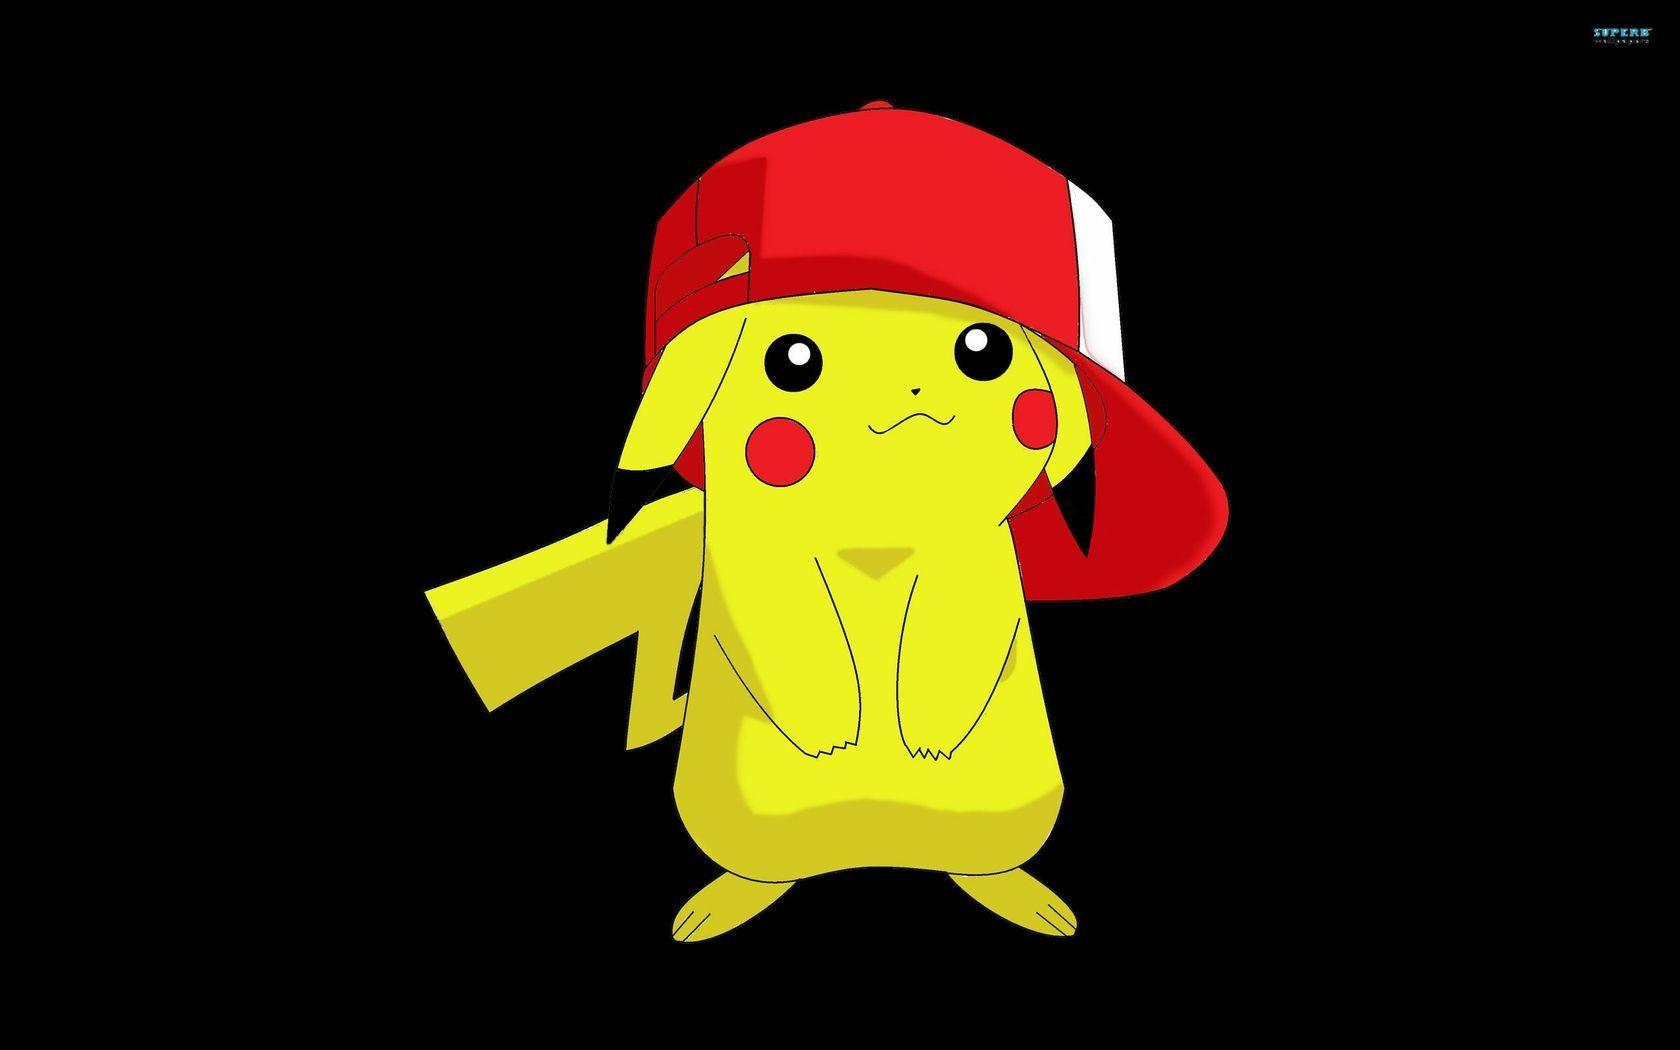 Pikachu Wallpaper Images amp Pictures   Becuo 1680x1050